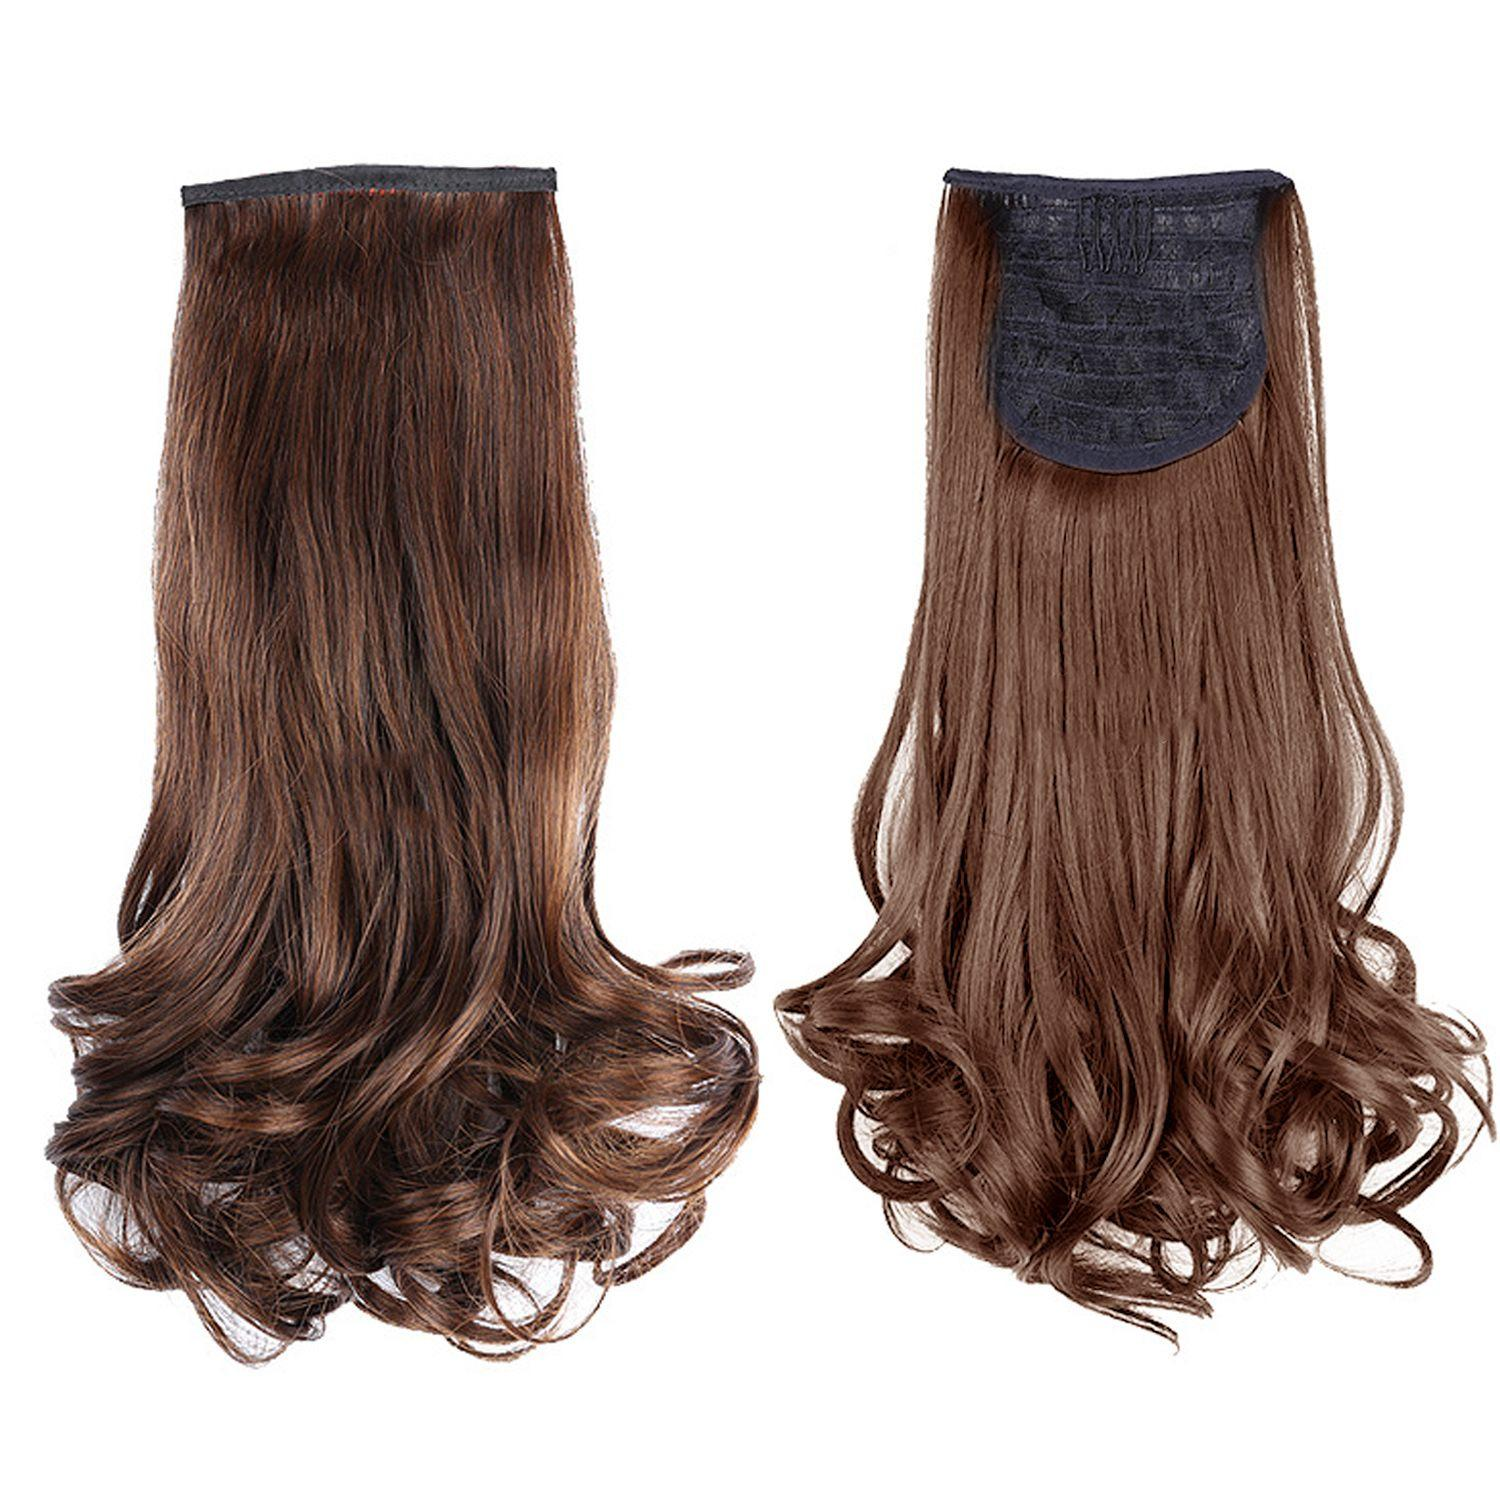 Ladies Clip in Curly Wave Hair Extensions Wigs Ponytail Hairpieces 48cm (Brown) - intl